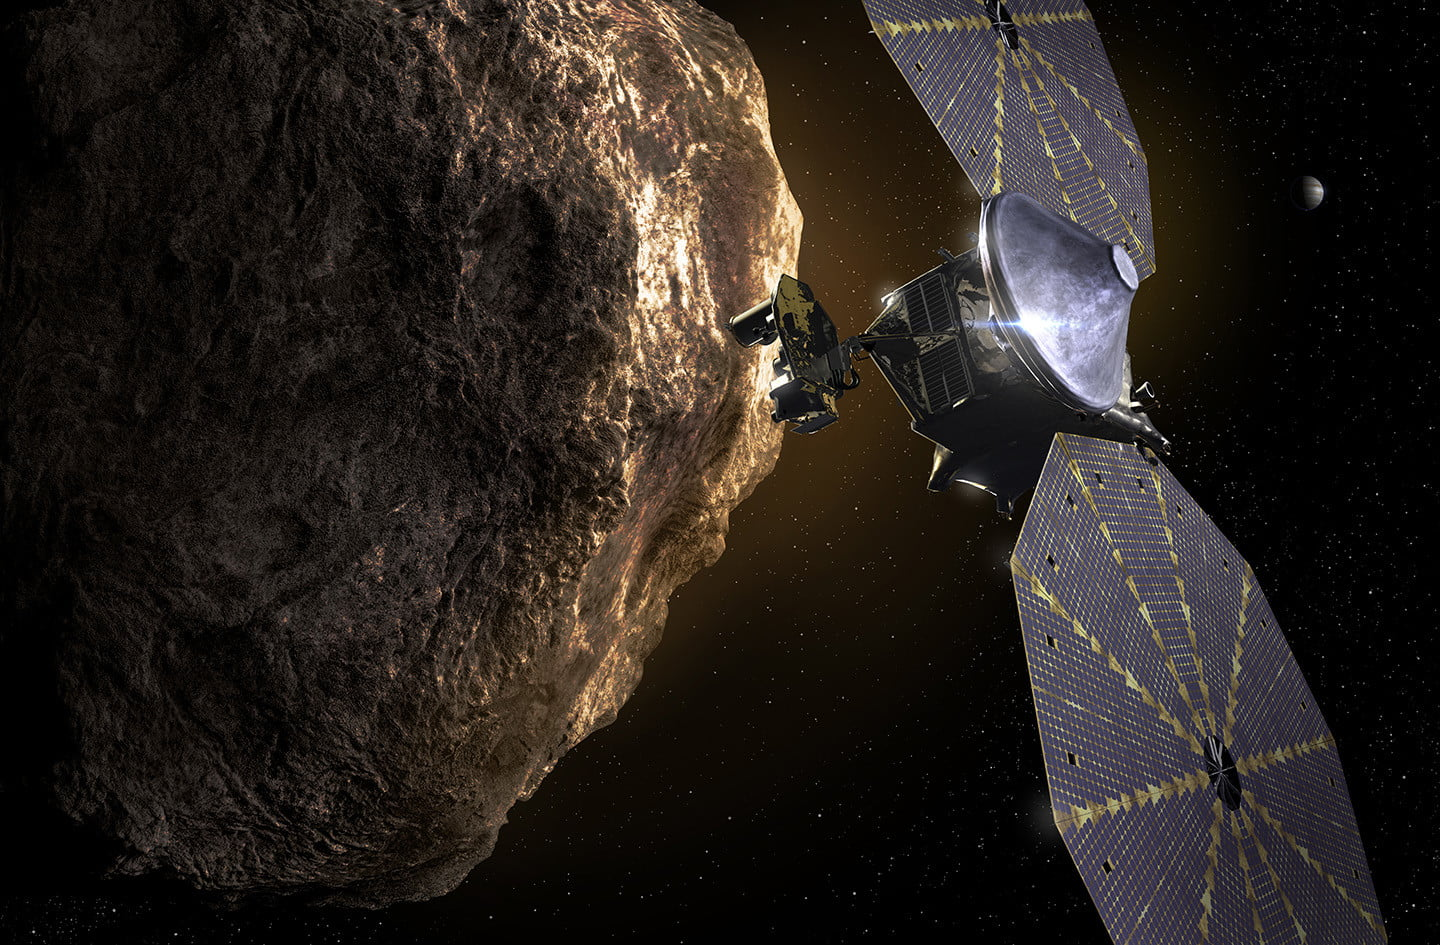 NASA's Lucy spacecraft could unravel the mystery of how the solar system formed